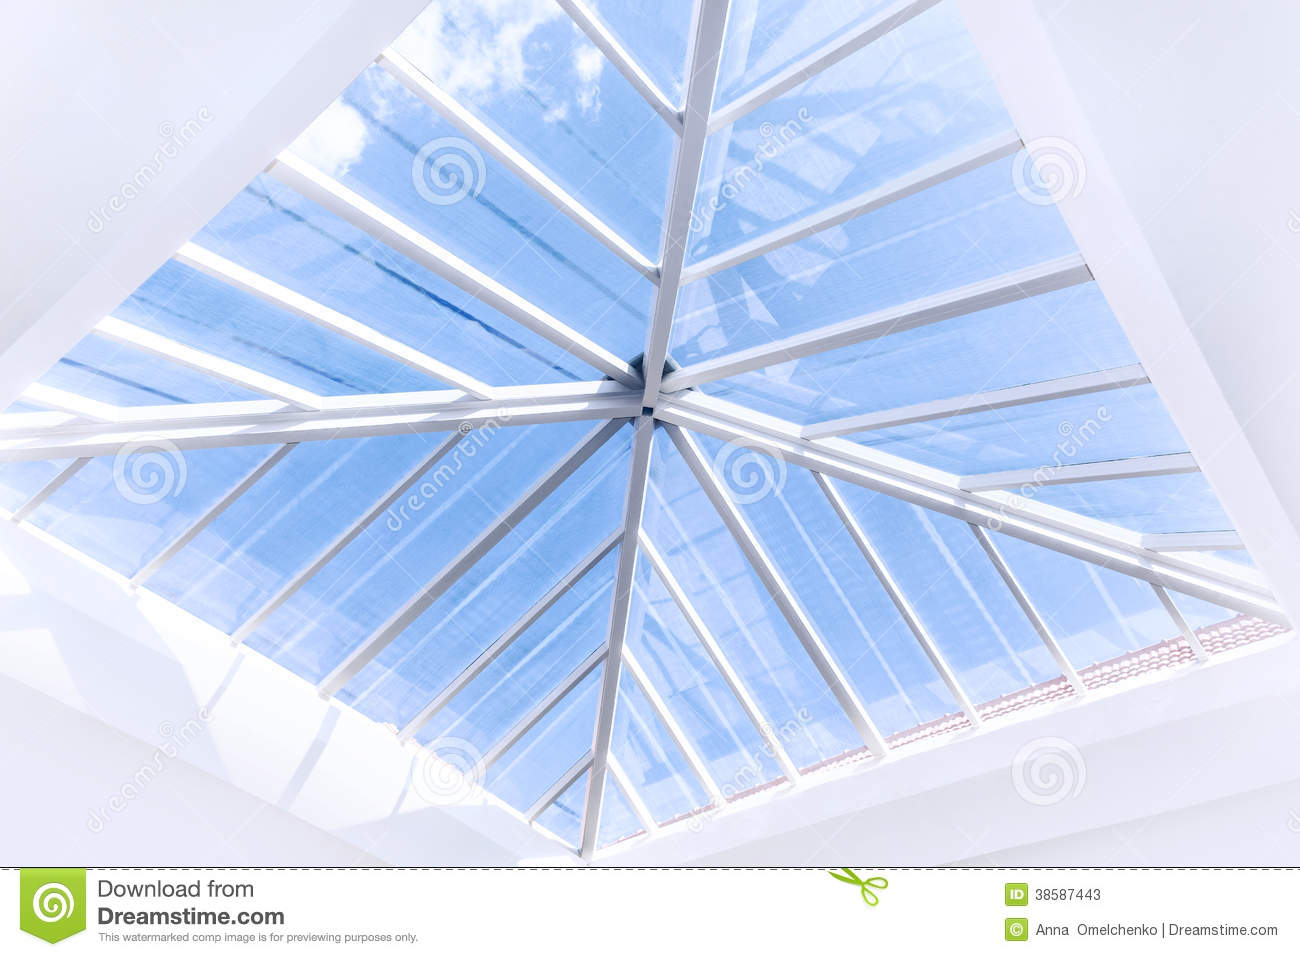 Glass roof design stock photos image 38587443